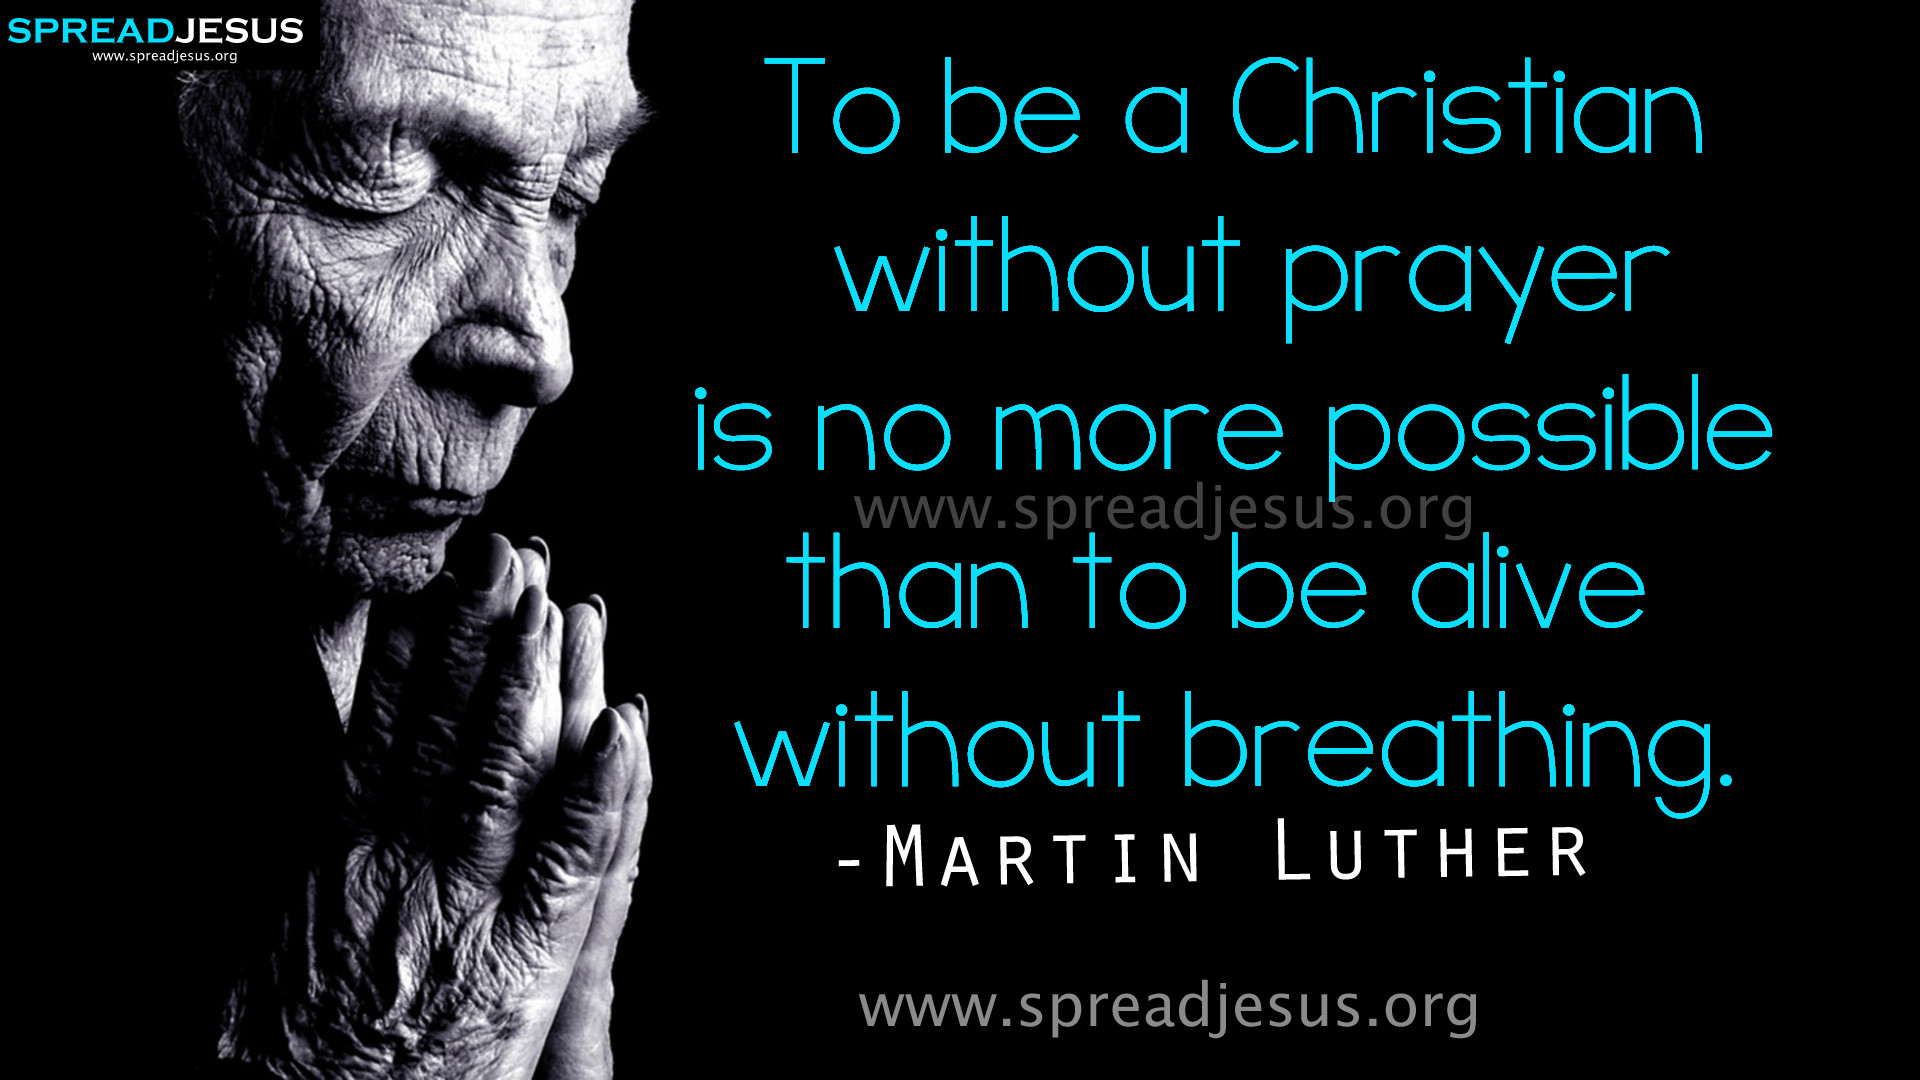 1920x1080, Prayer Quotes Hd Wallpapers Martin Luther - Jesus Images Quotes Hd - HD Wallpaper